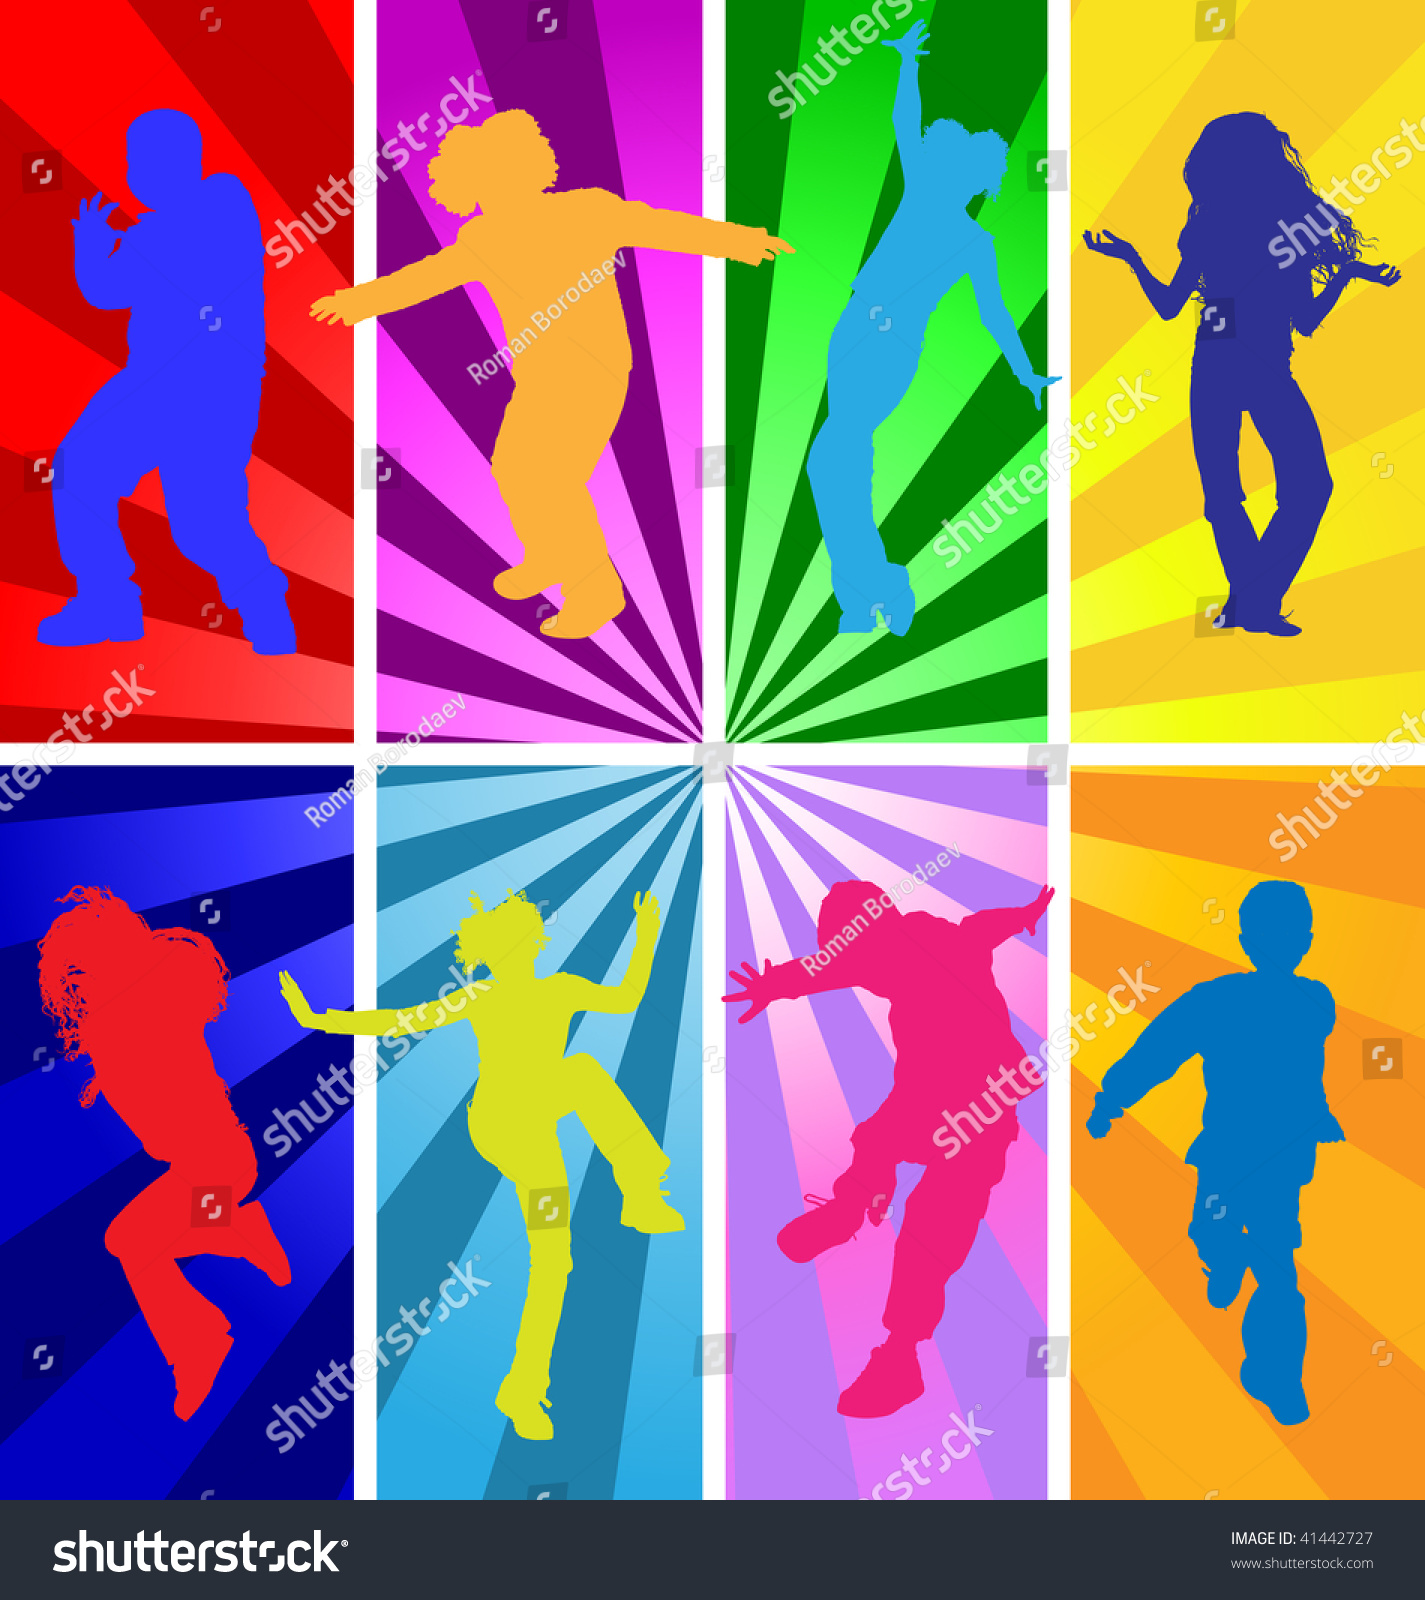 Kids Disco Dance Children Party Vector Silhouette Jumping Background Images People Dancing